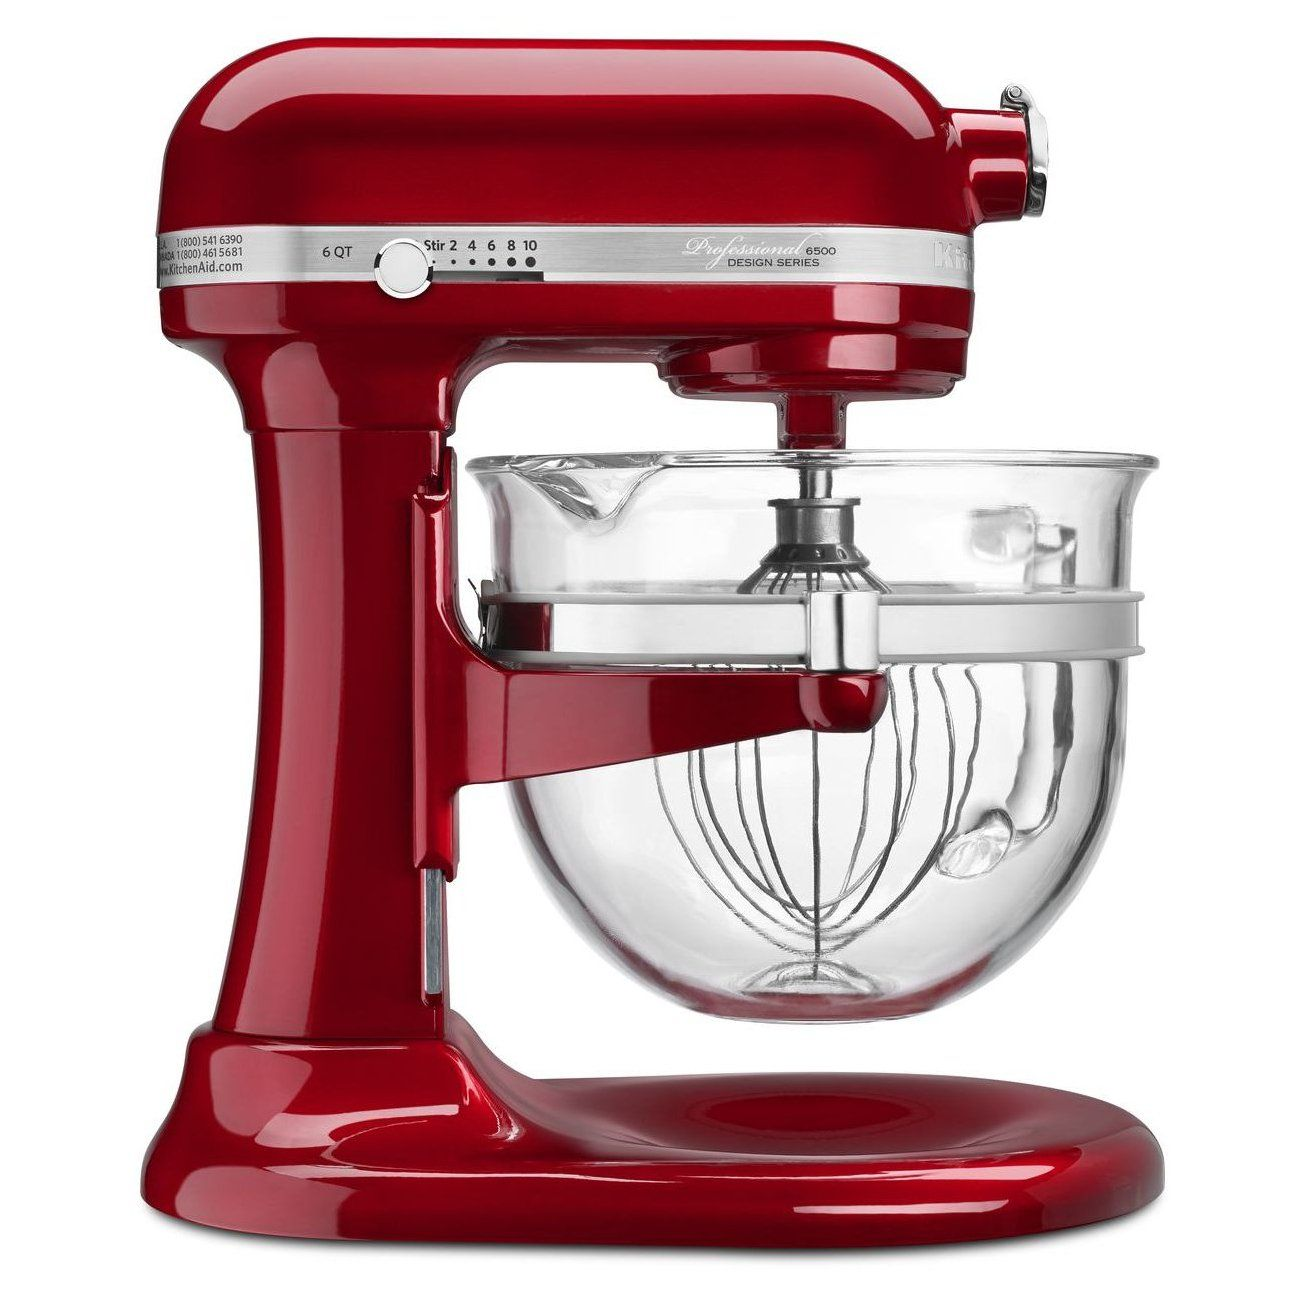 amazon com kitchenaid professional 6500 design series candy apple rh pinterest com